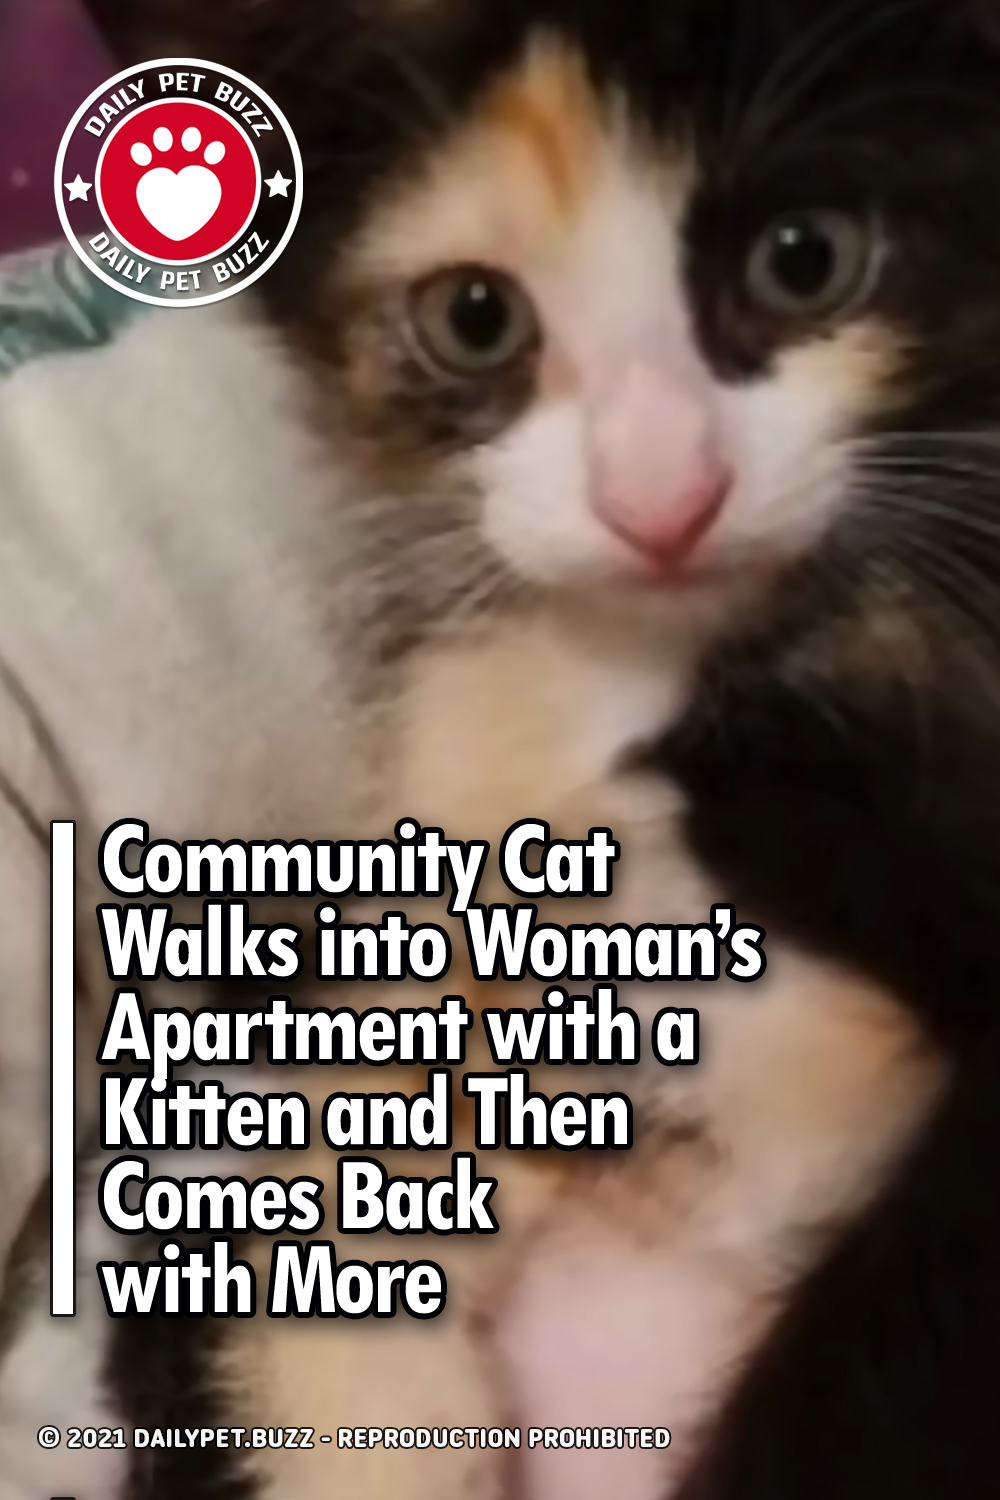 Community Cat Walks into Woman's Apartment with a Kitten and Then Comes Back with More